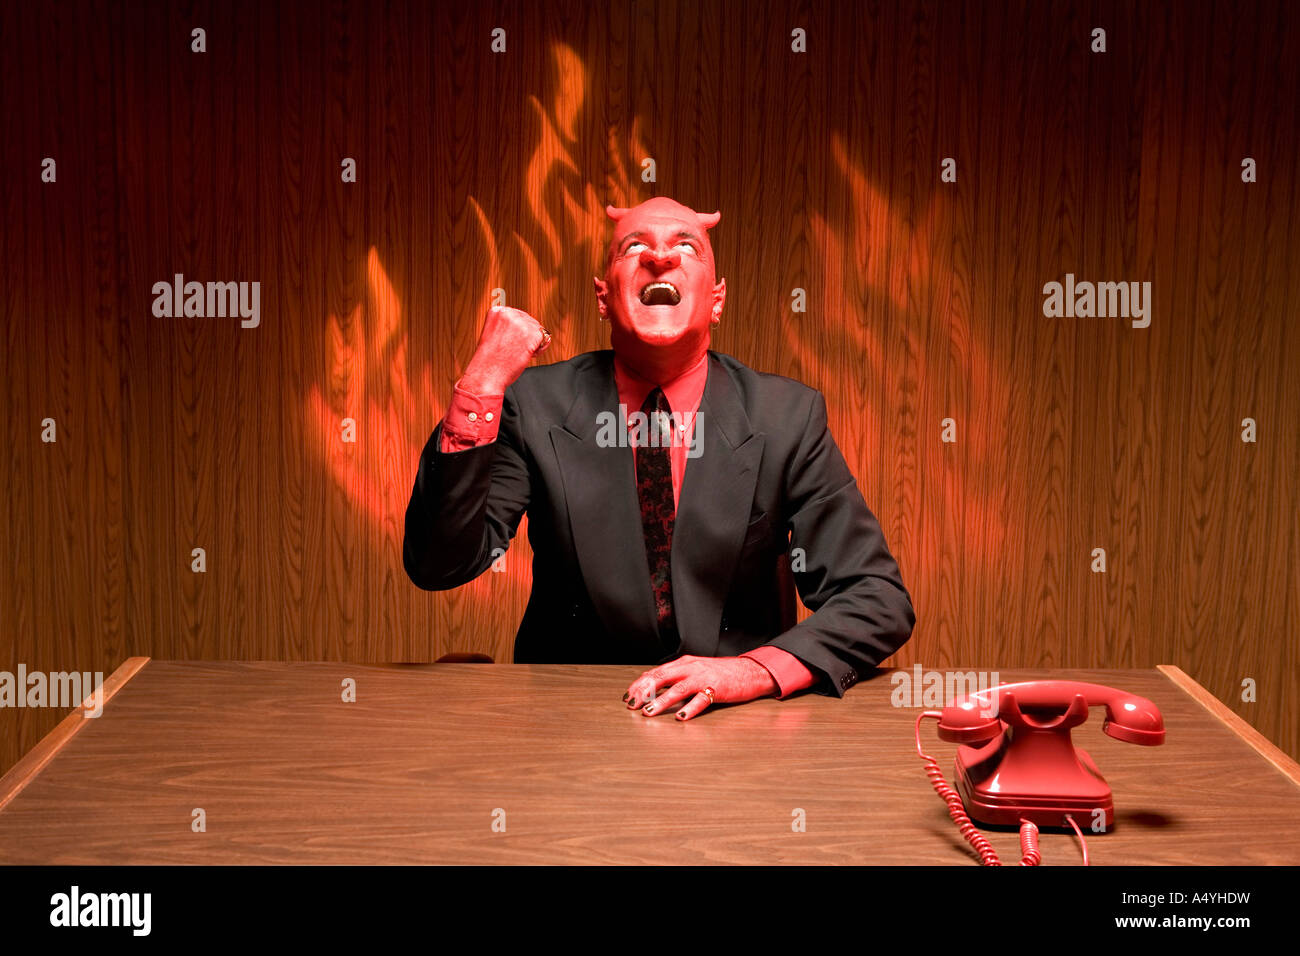 Businessman dressed as devil laughing - Stock Image